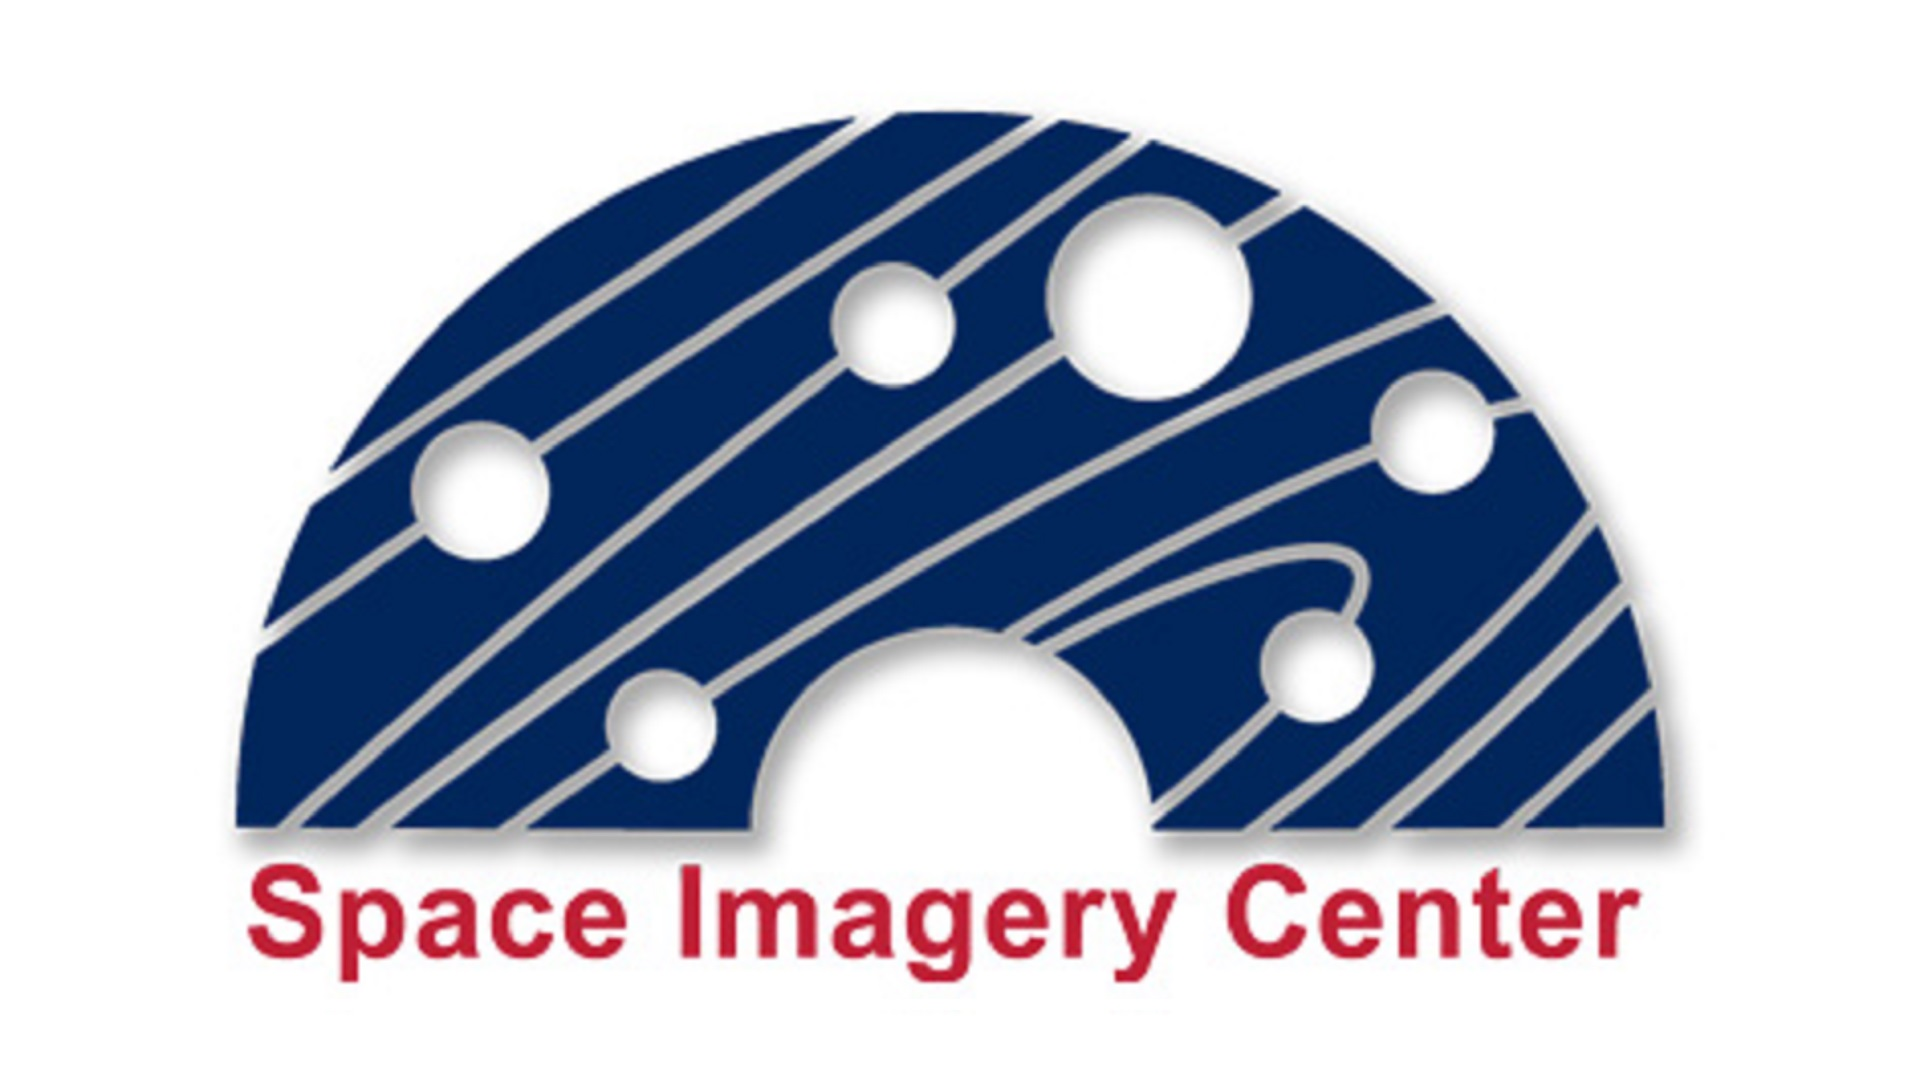 Space Imagery Center Logo